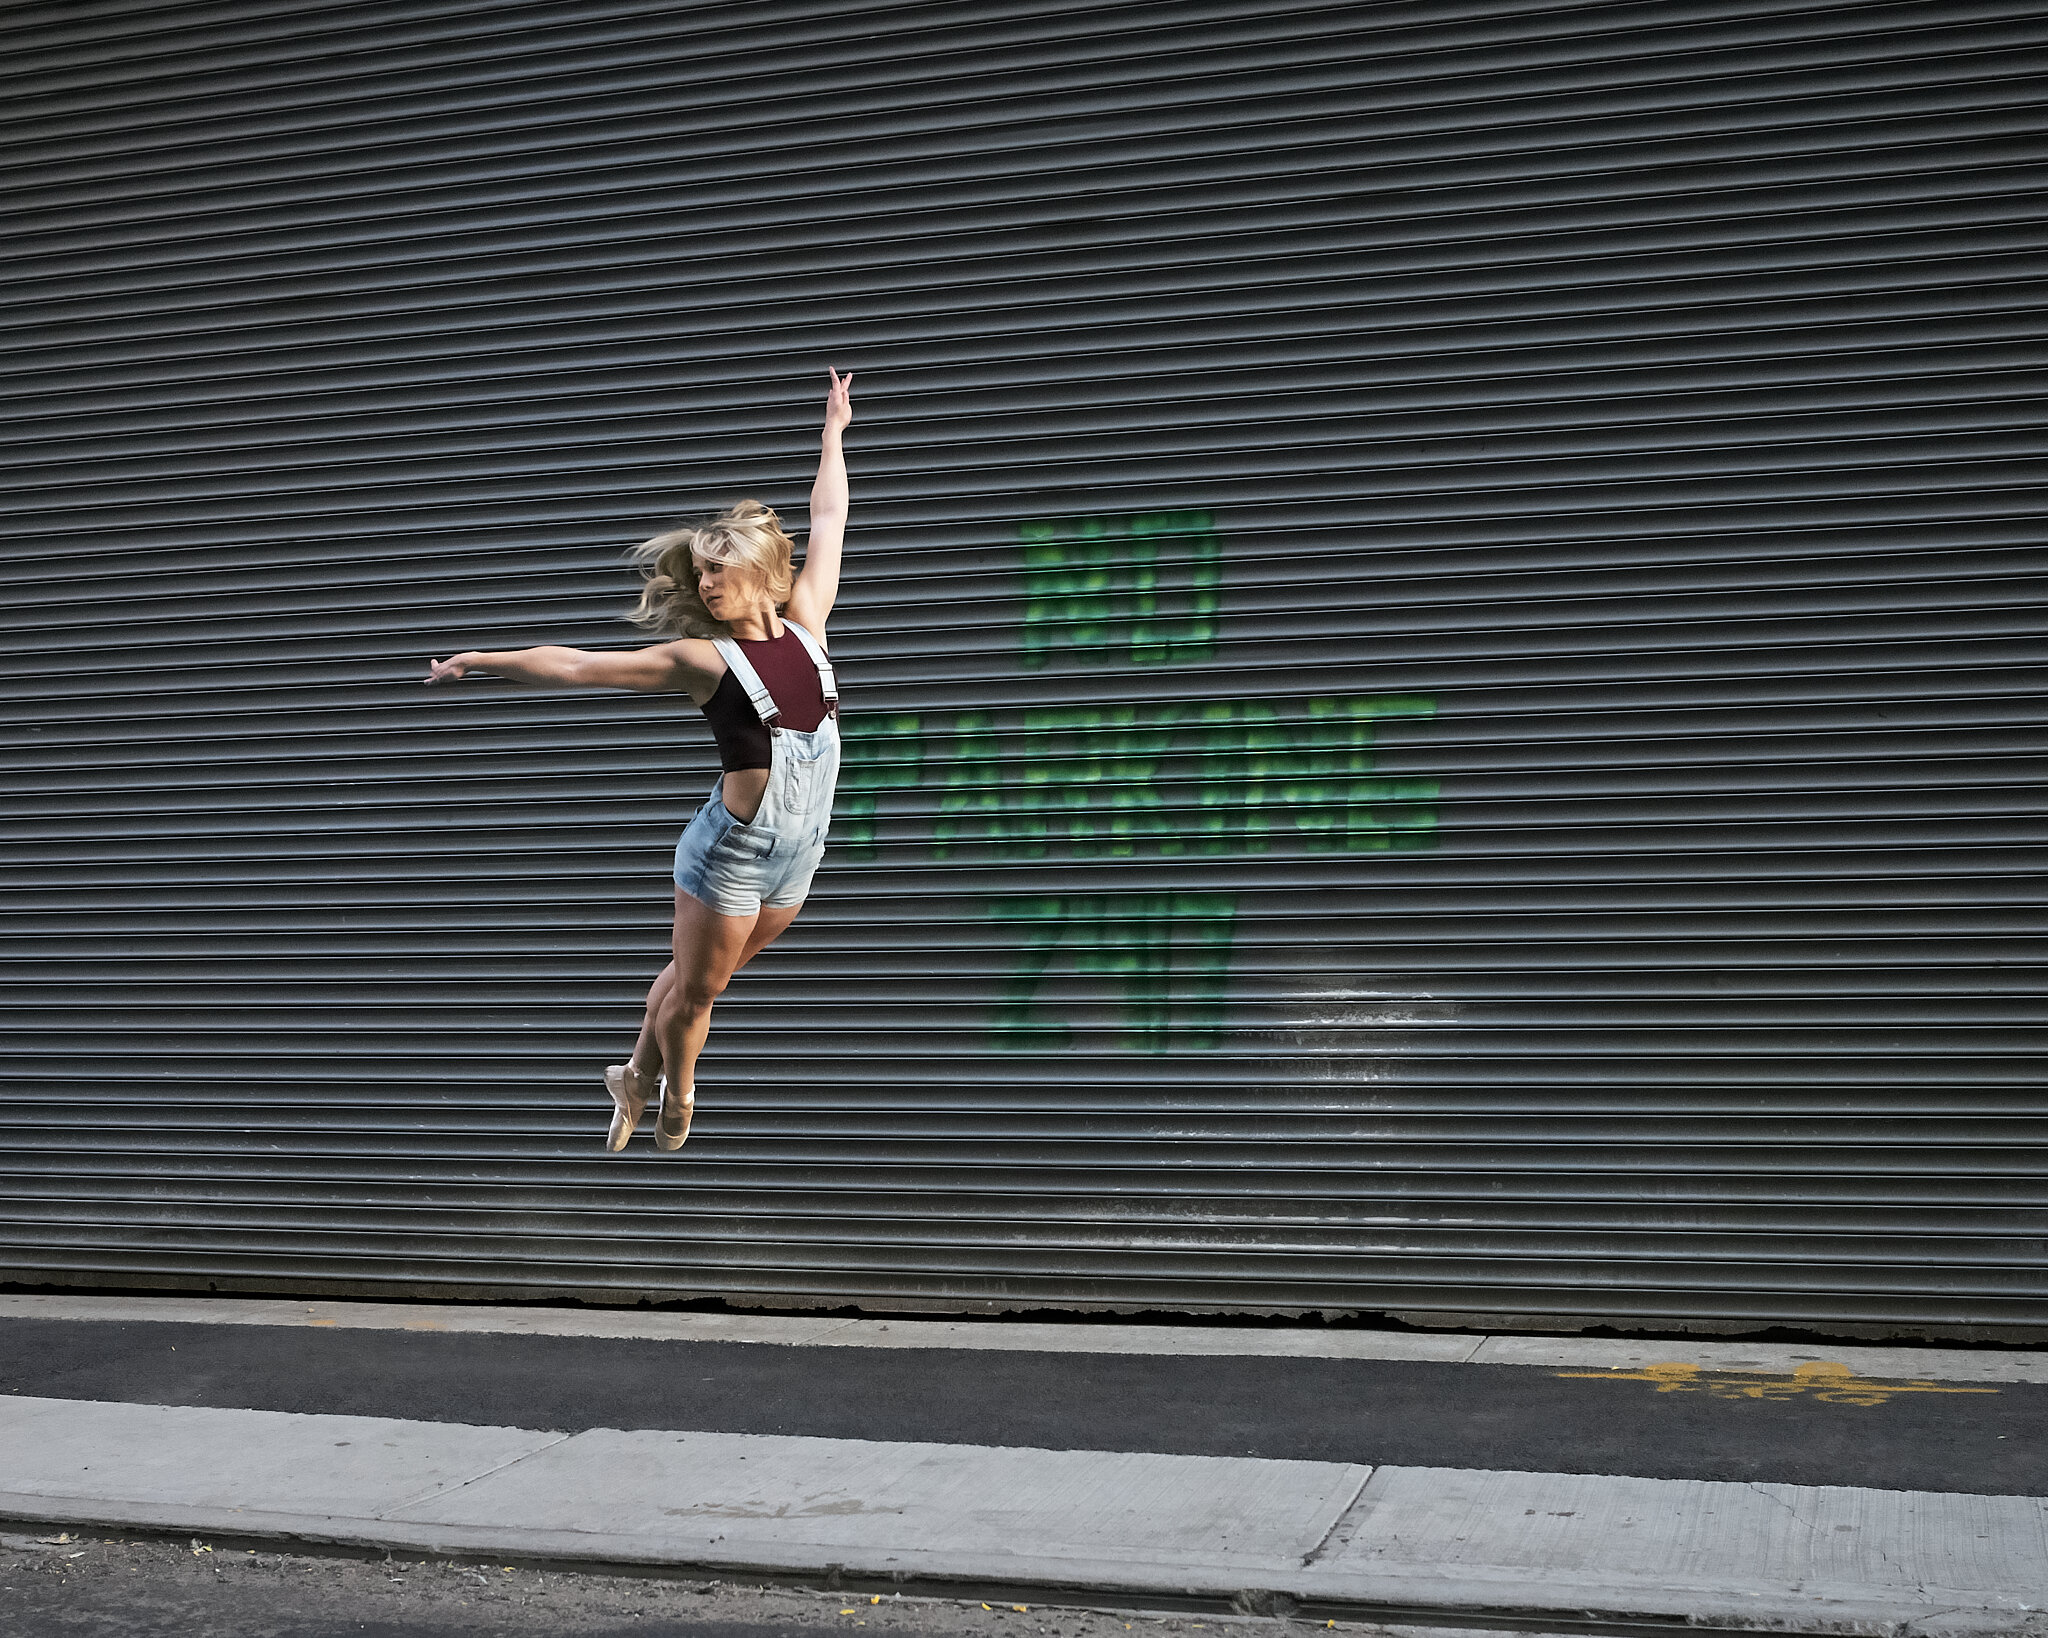 NYC Dancer jumping